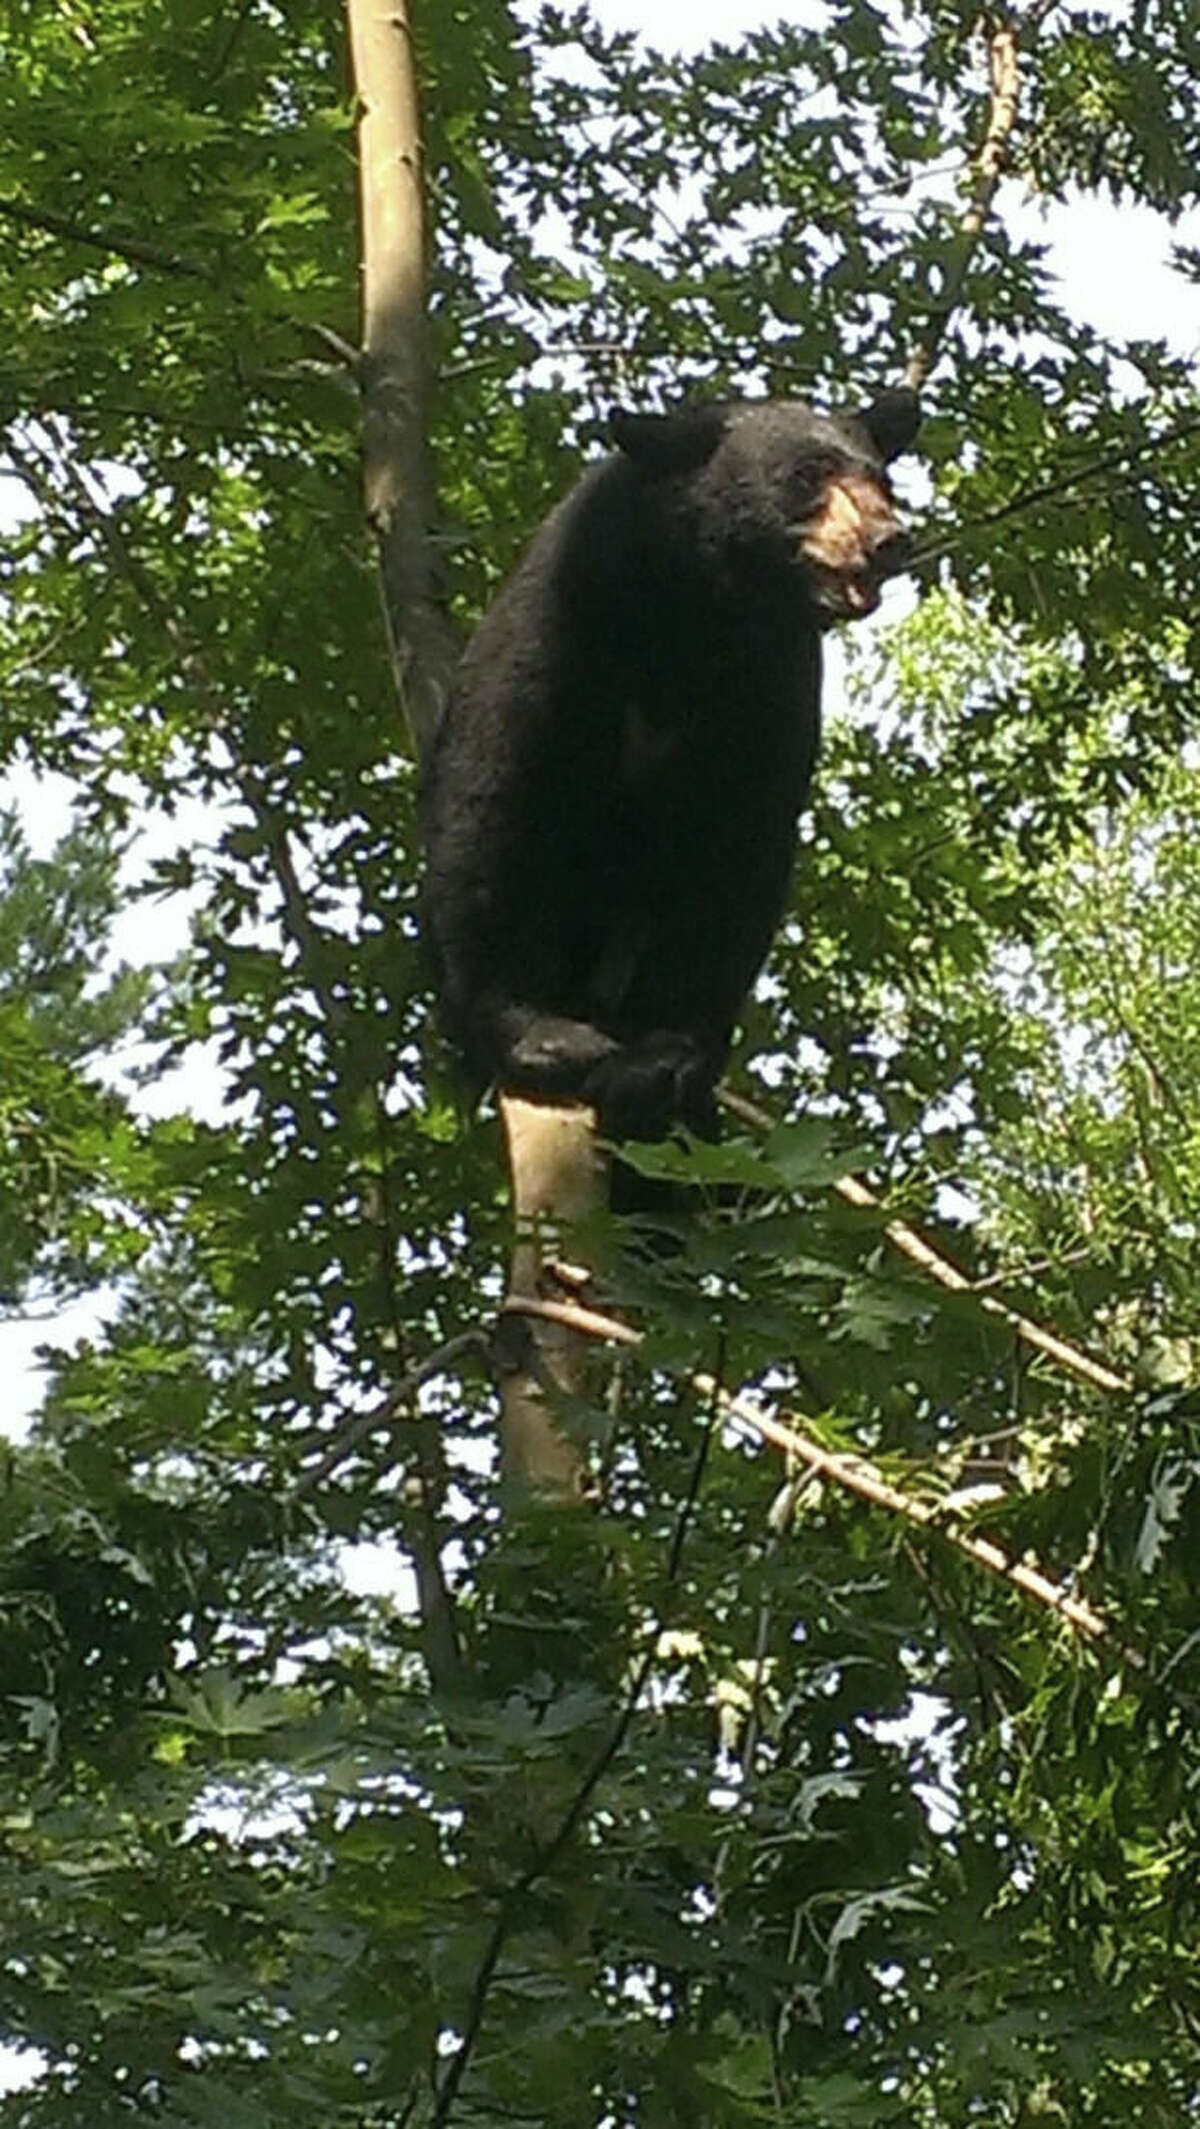 In this Sunday, July 5, 2015 photo provided by the Hartford Police Department, a black bear is up a tree in Hartford, Ct. The 250-pound male estimated to be about 3-and-a-half years old was spotted on Colebrook Street in the Blue Hills area at about 9:30 a.m. Sunday. The bear safely was tranquilized and relocated by state environmental officers. (Hartford Police Department via AP)